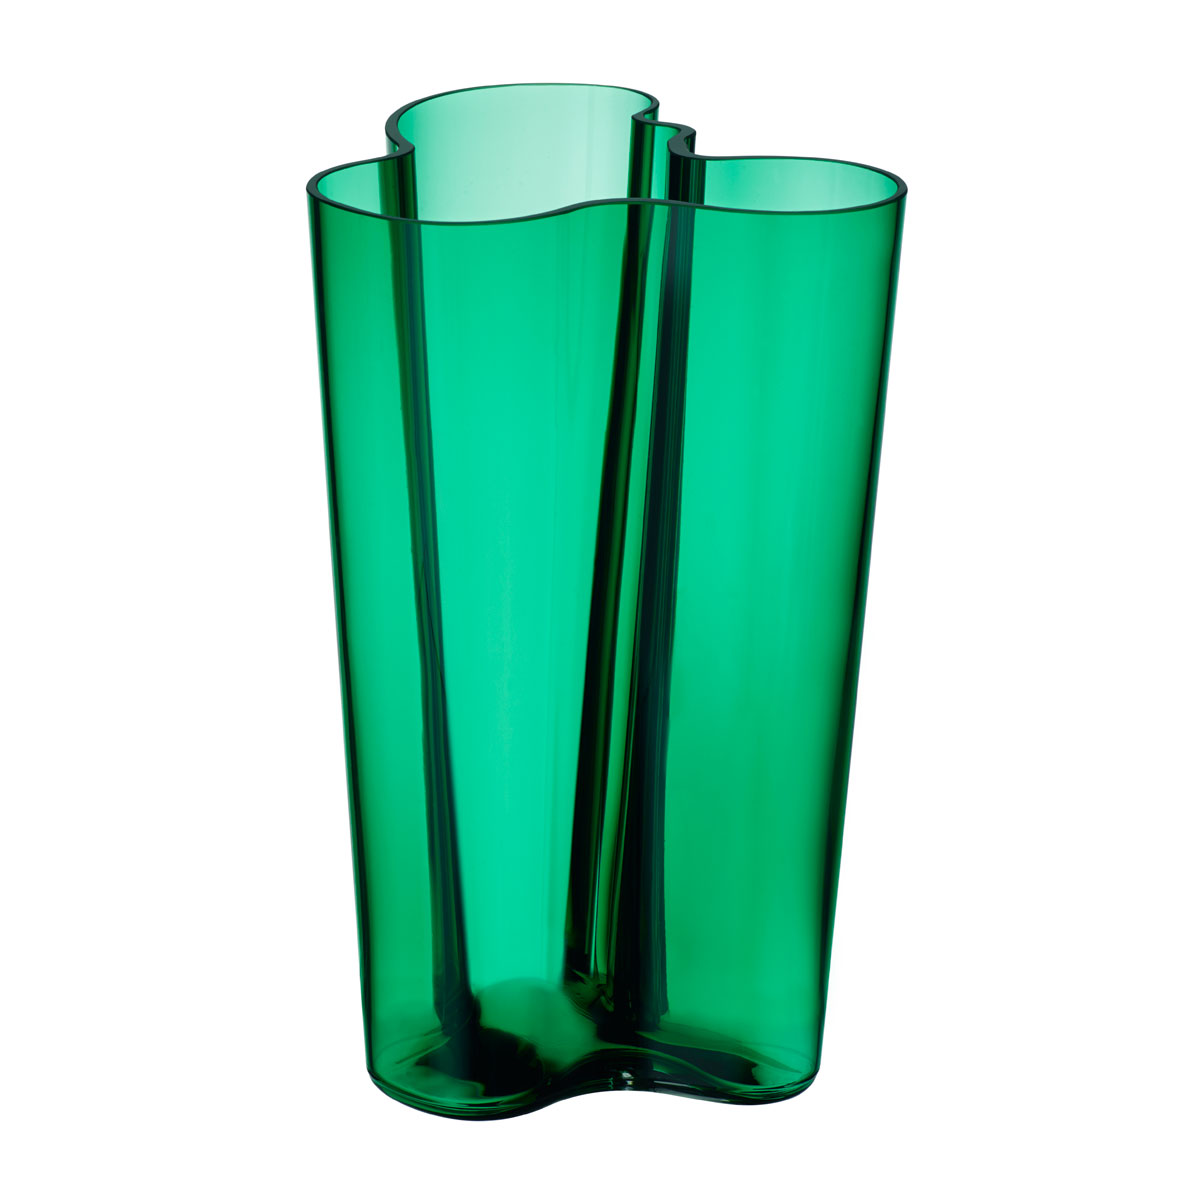 iittala aalto finlandia emerald vase 10 iittala alvar aalto vases. Black Bedroom Furniture Sets. Home Design Ideas